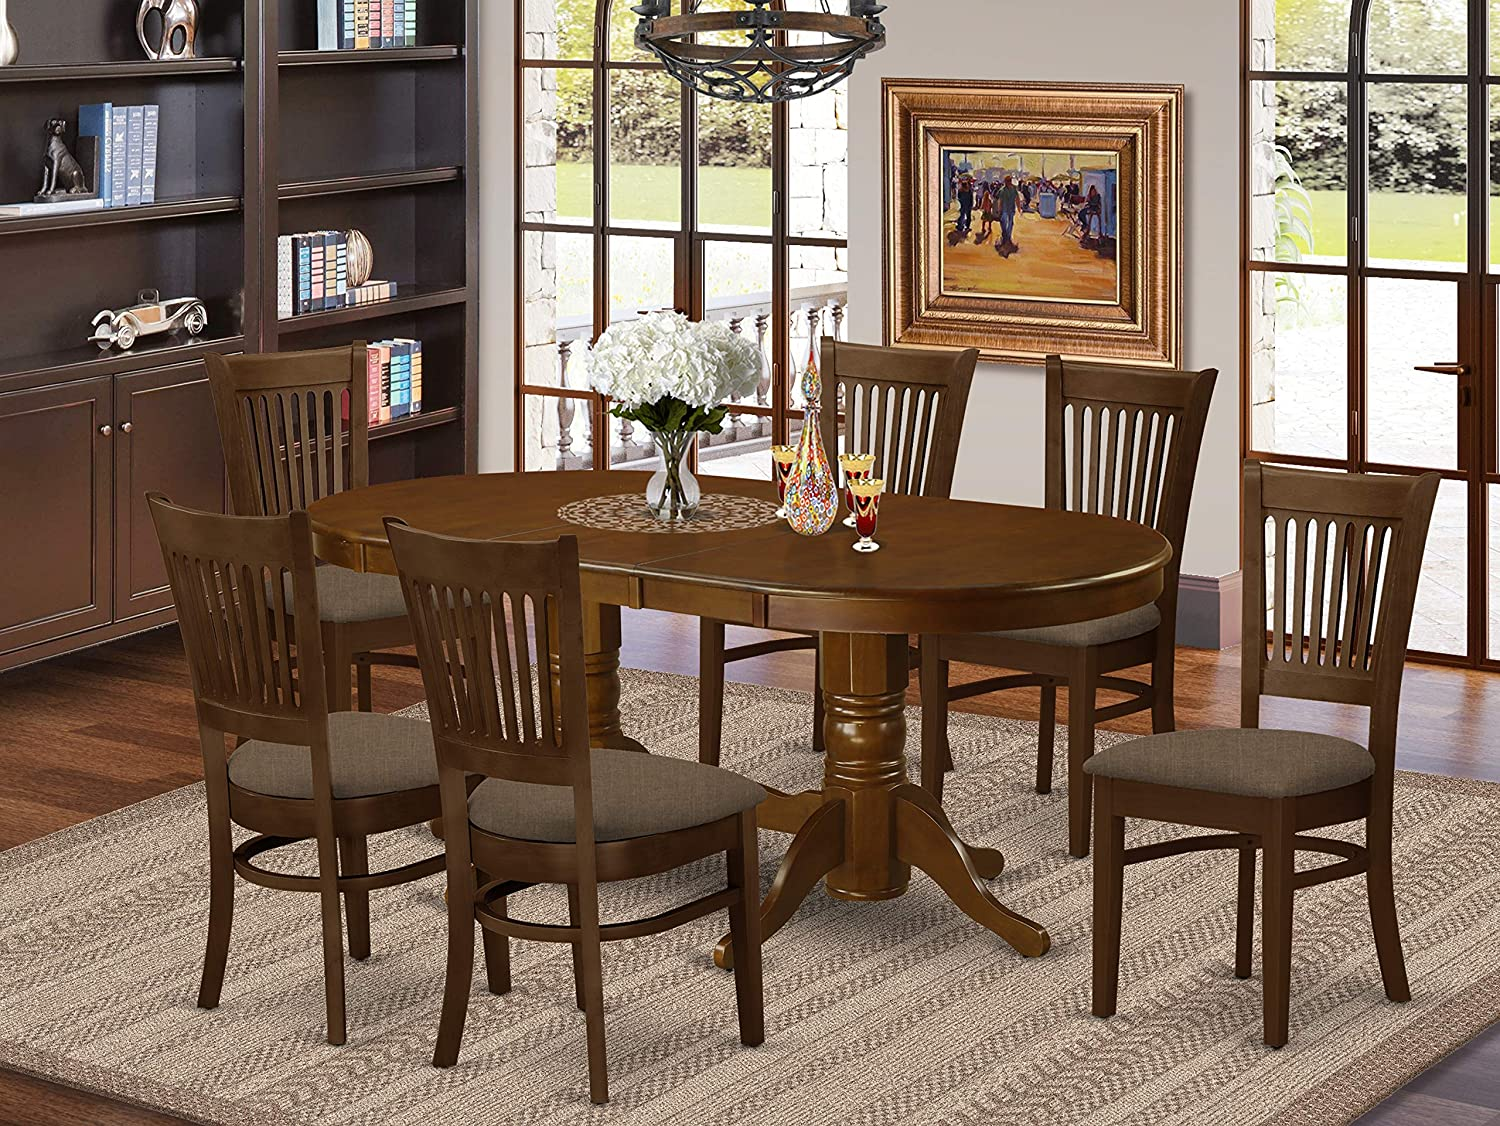 7 Pc Dining Room Set Table With Leaf And 6 Dining Chairs Furniture Decor